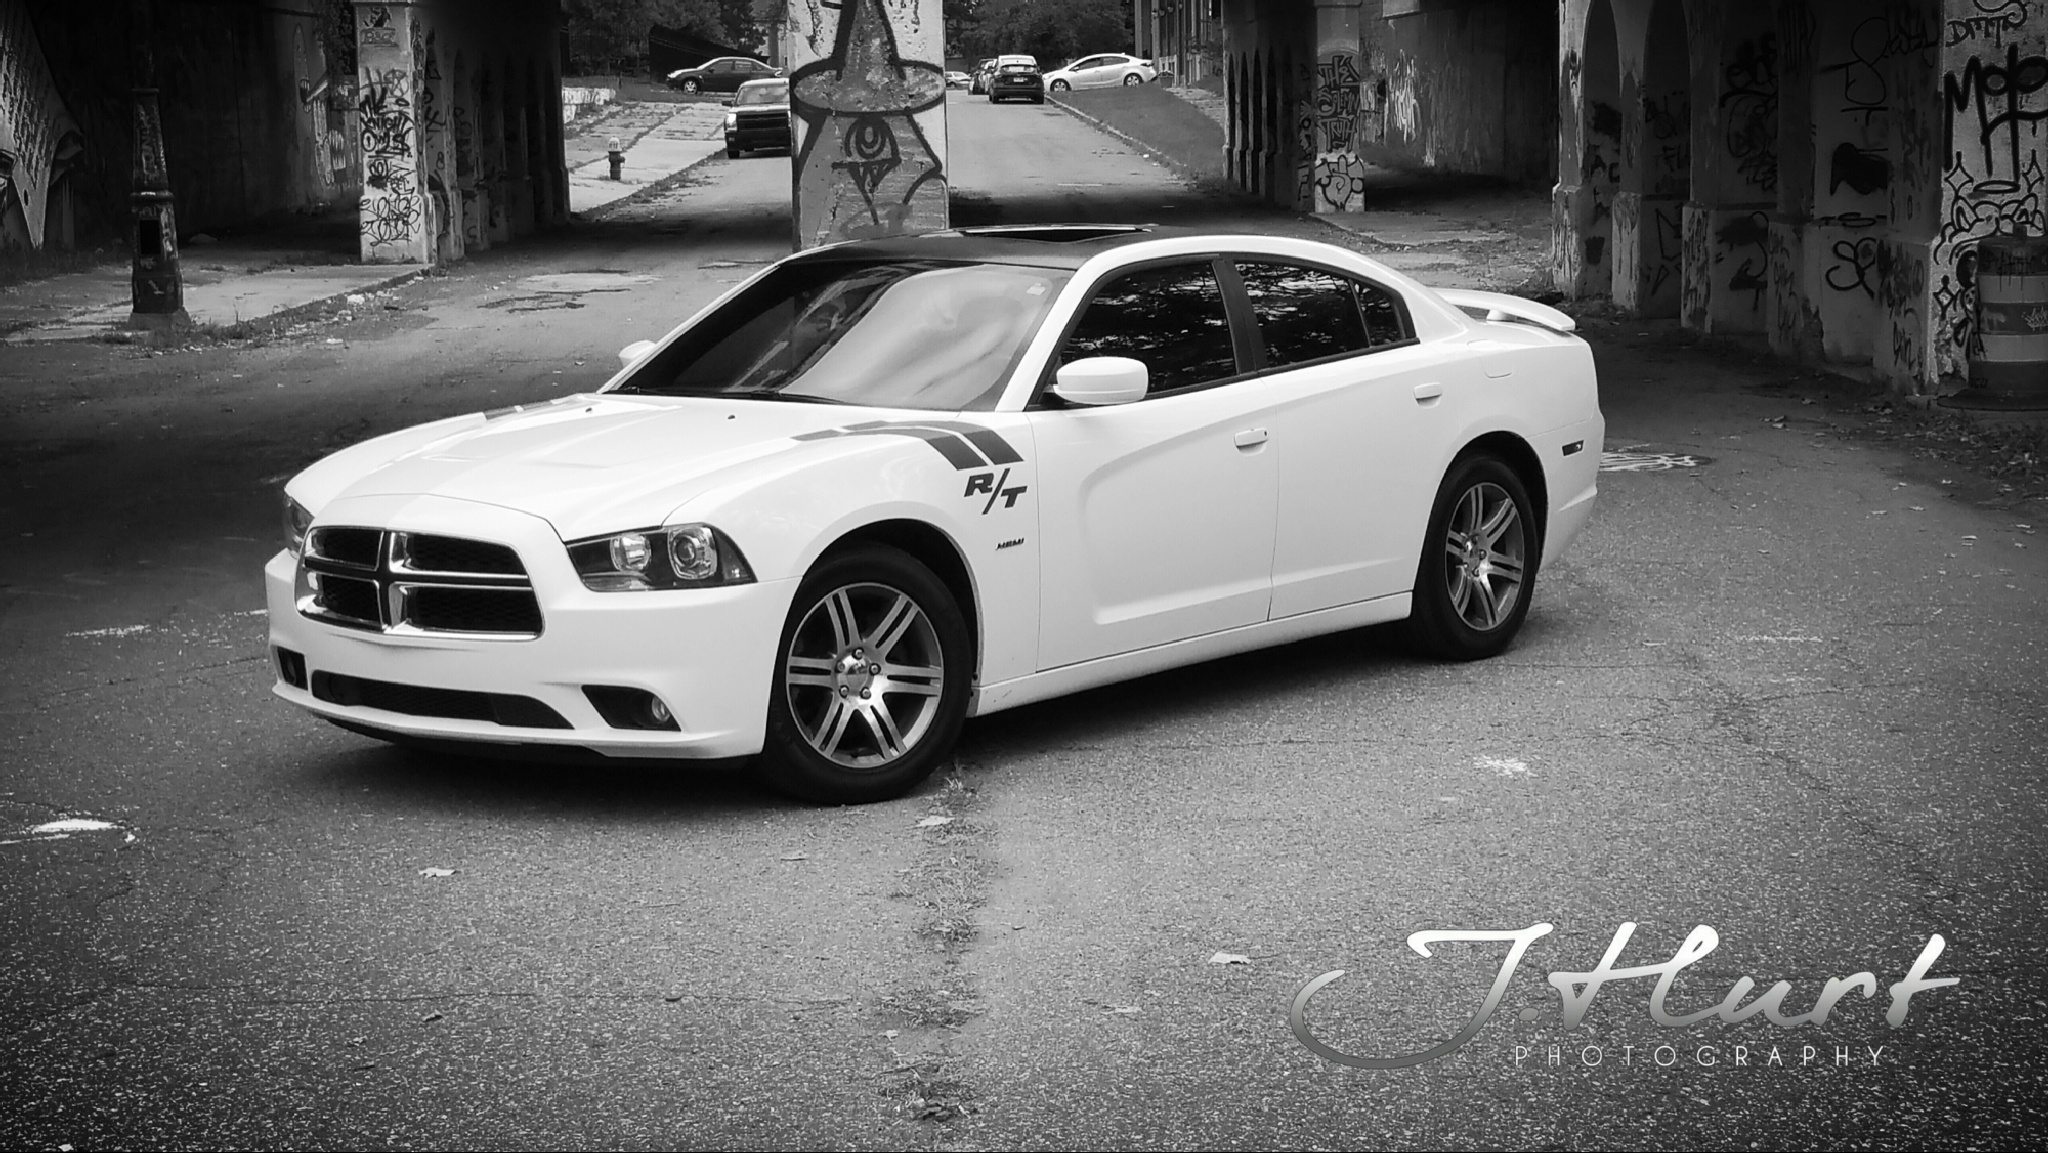 American Muscle  by J. Hurt Photography, LLC.